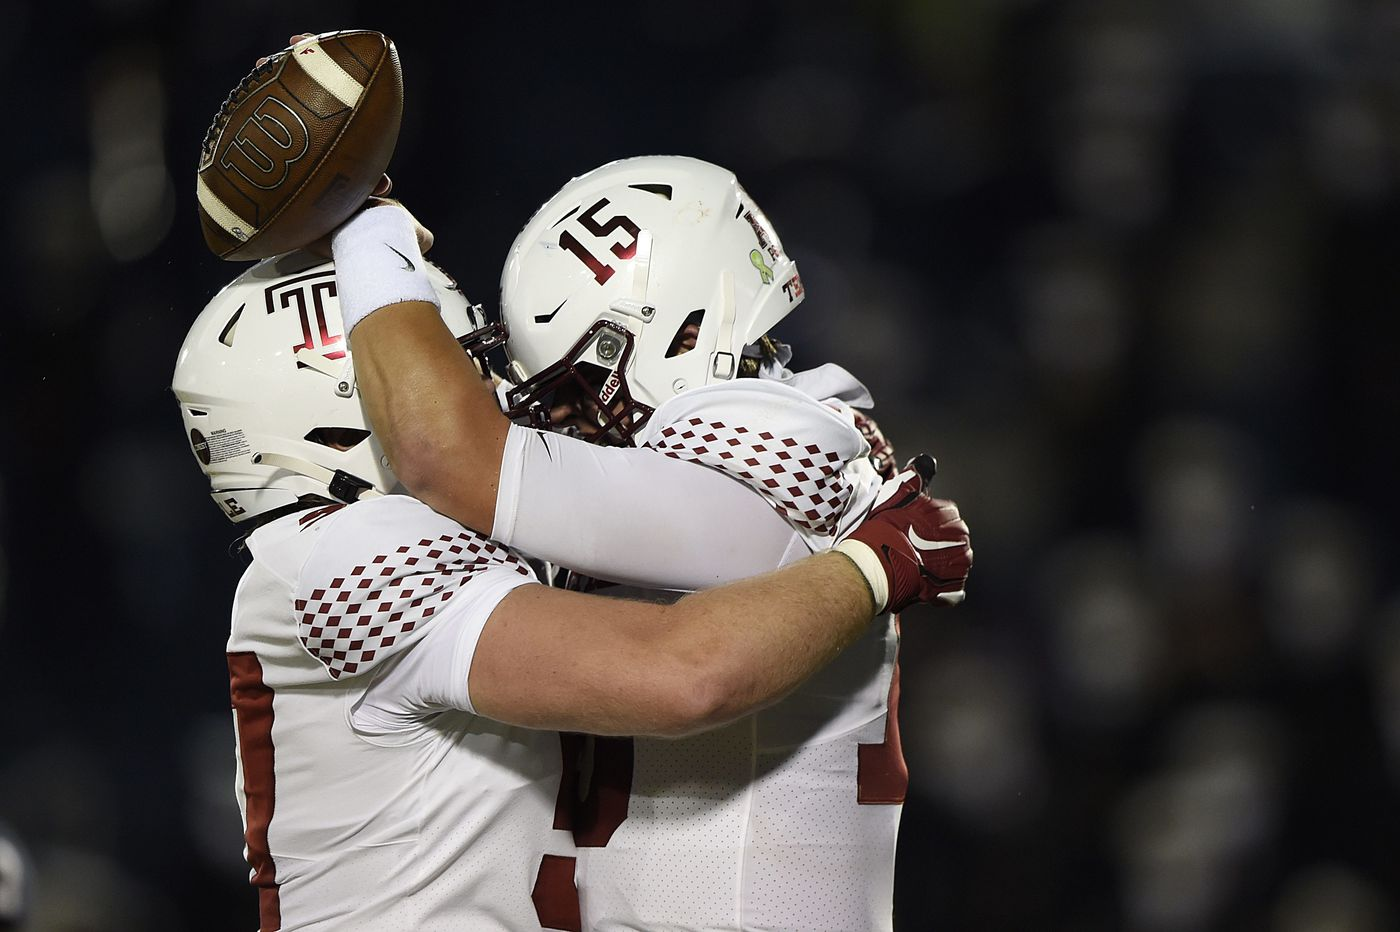 Temple is heavily favored to beat South Florida, but that didn't work out last week against Navy